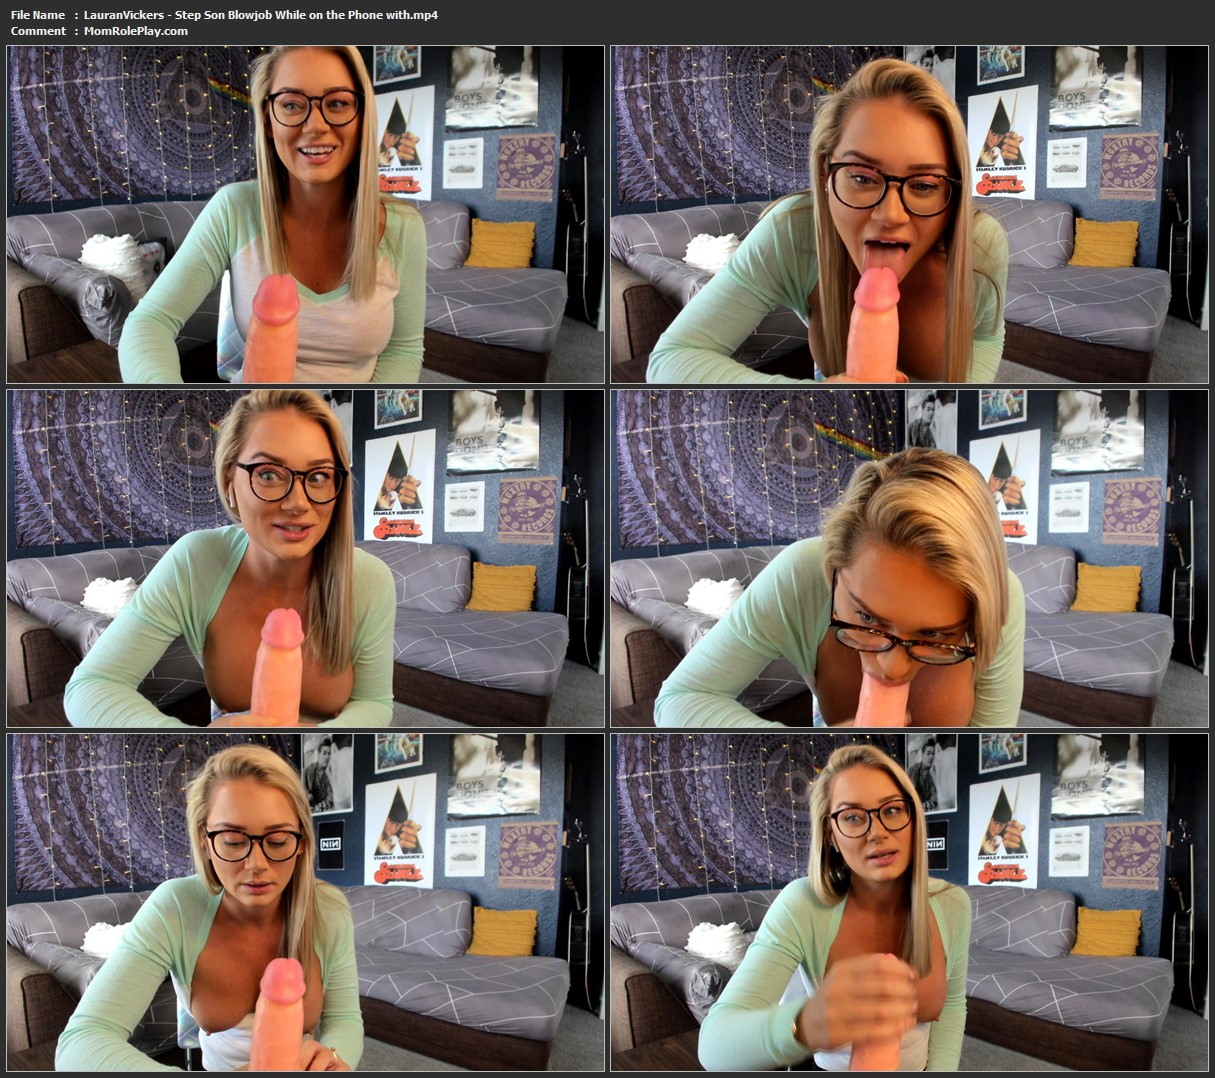 Lauran Vickers - Step-Son Blowjob While on the Phone with